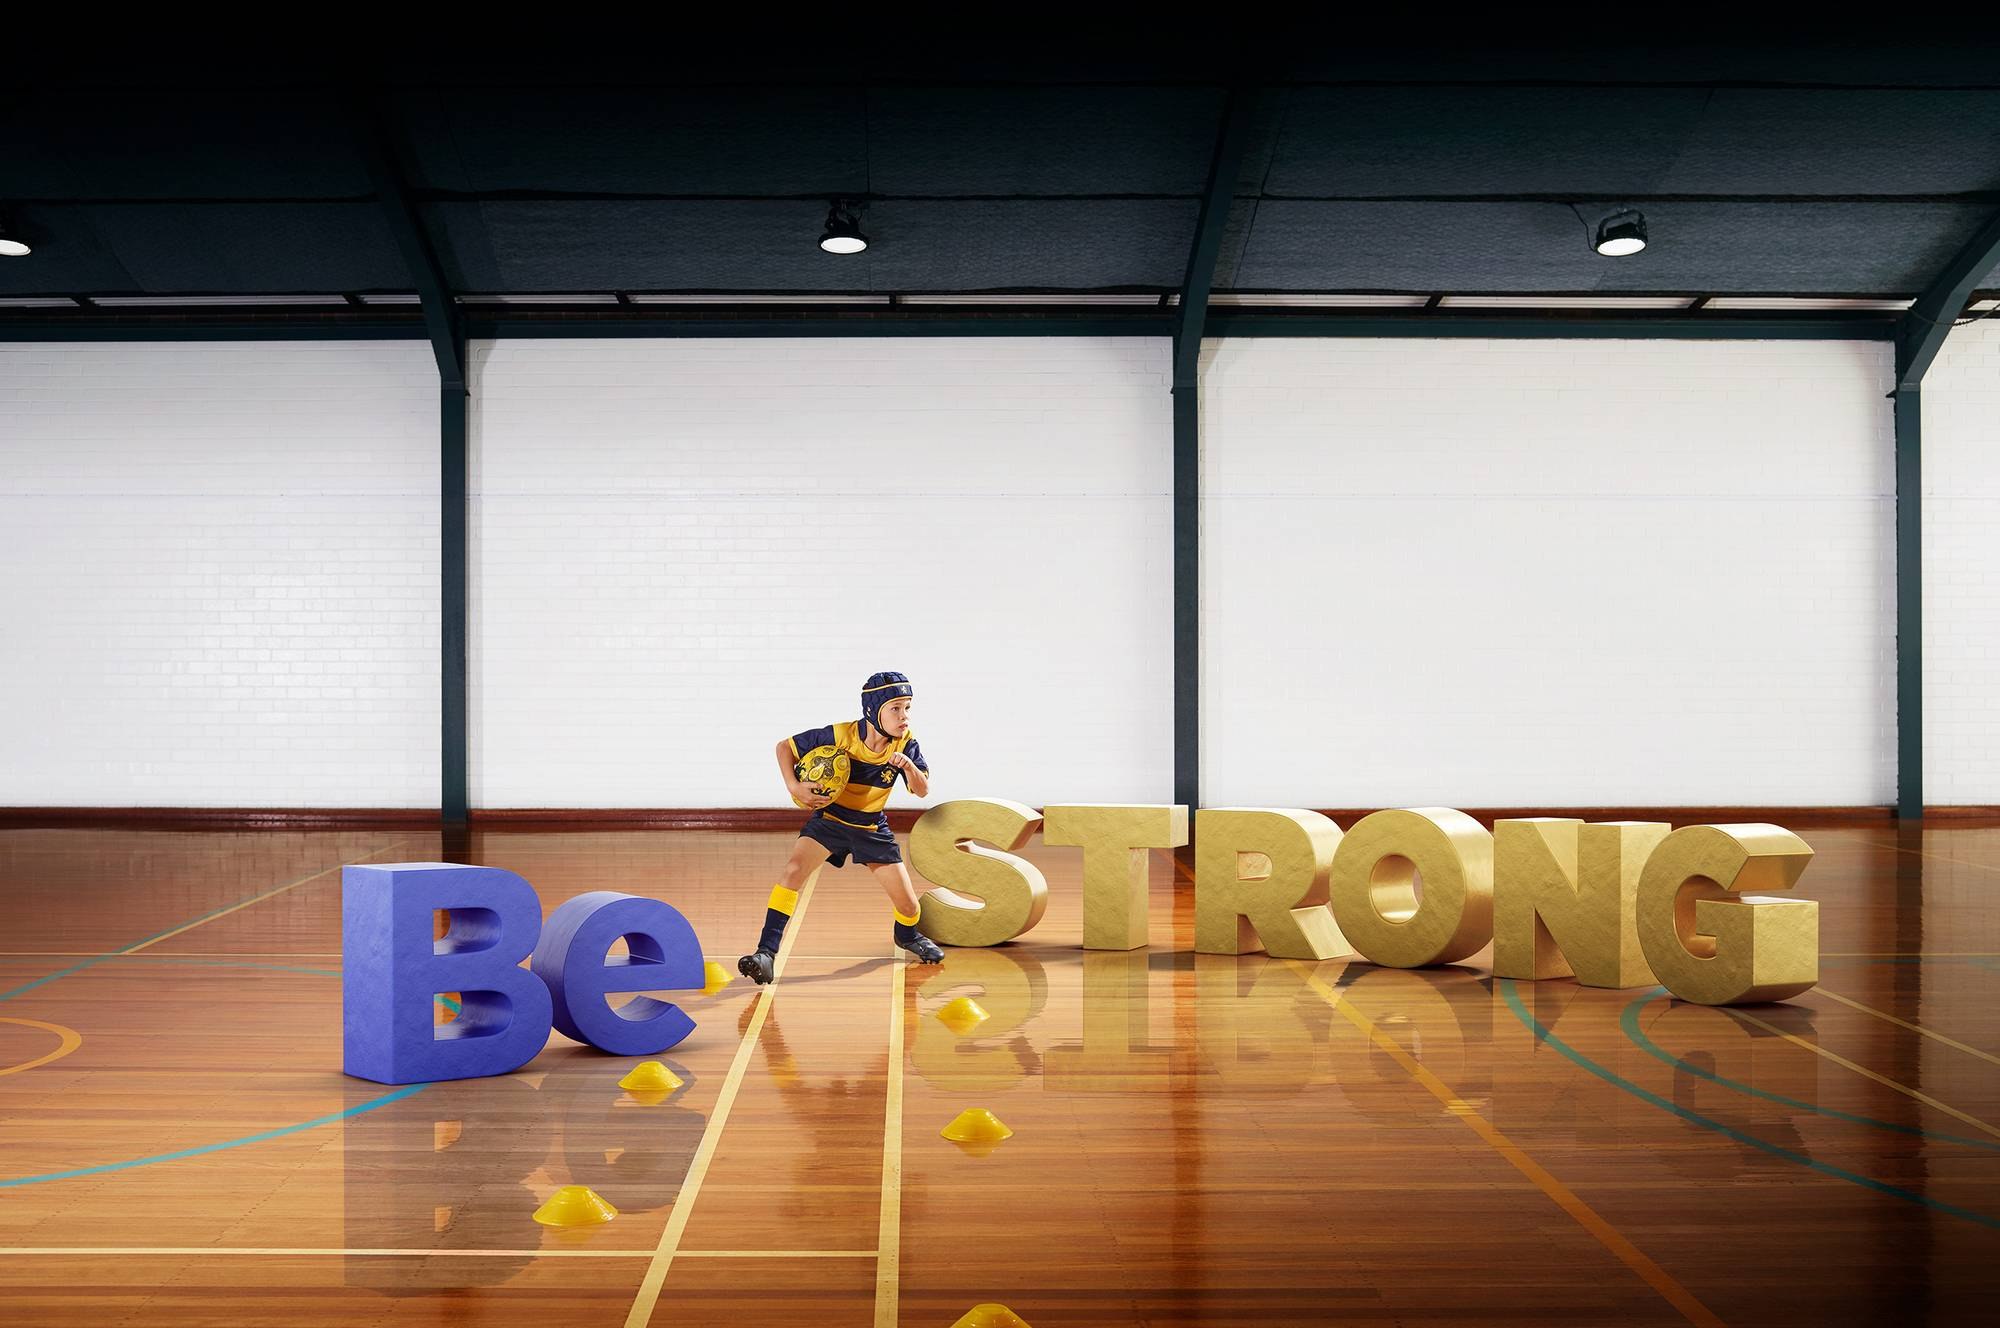 IPGMB_0001_Midford_Sport_2_Lime_BeSTRONG_2560px.jpg